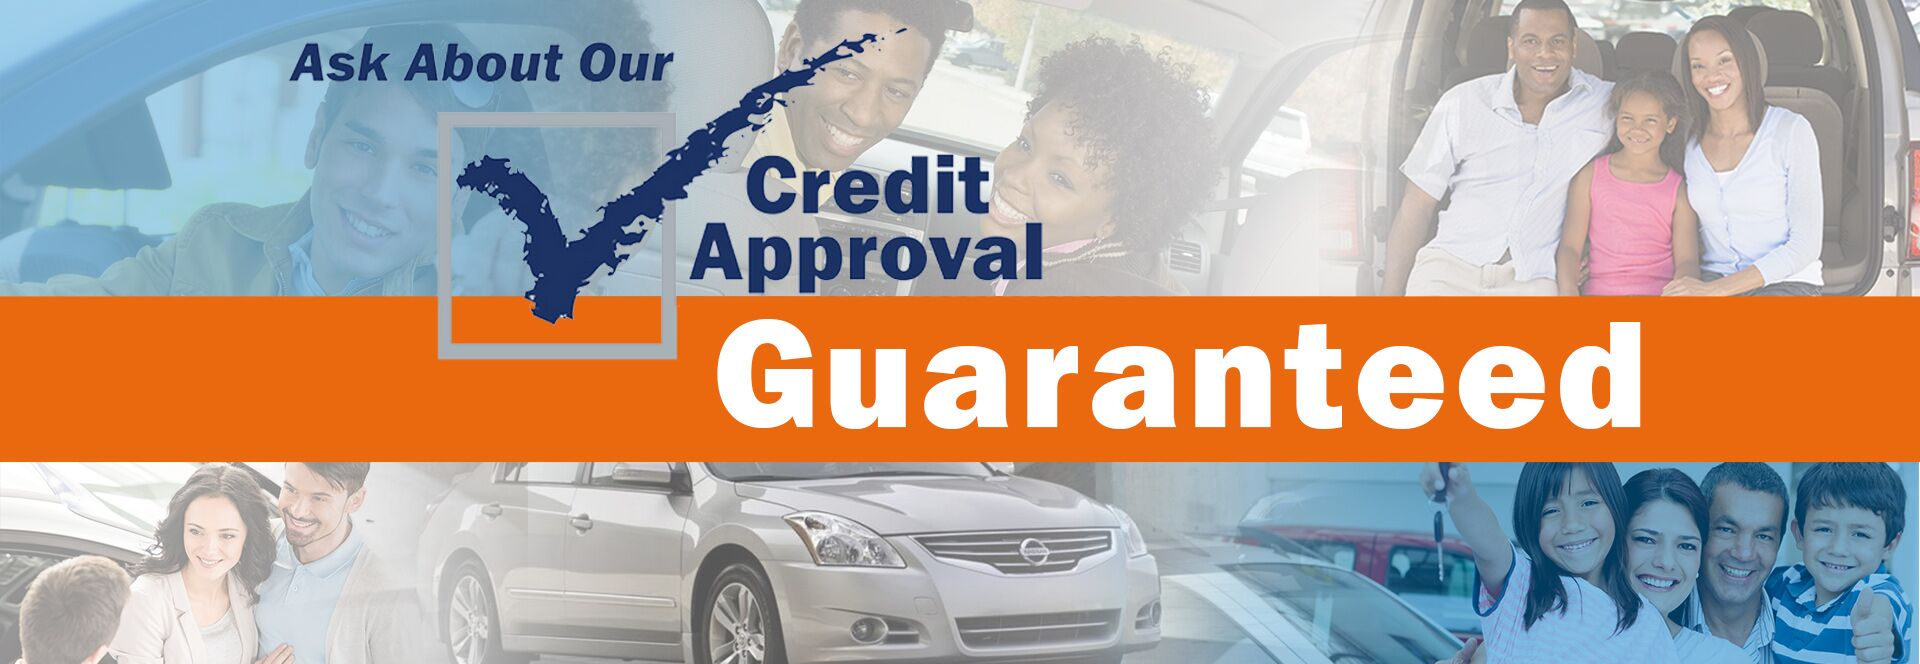 Auto Merchants Credit Approval